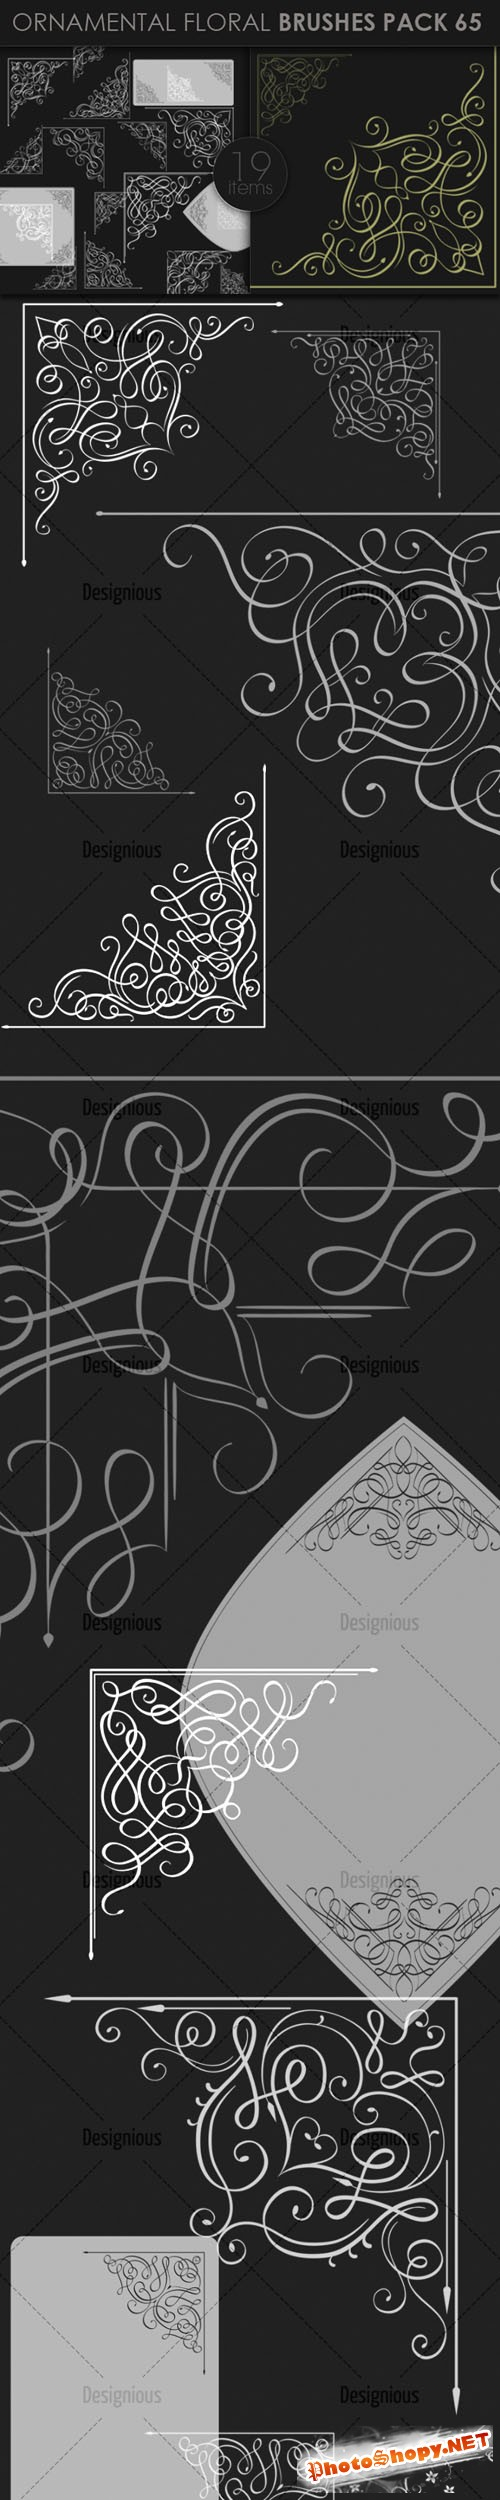 Ornamental Floral Photoshop Brushes Pack 65